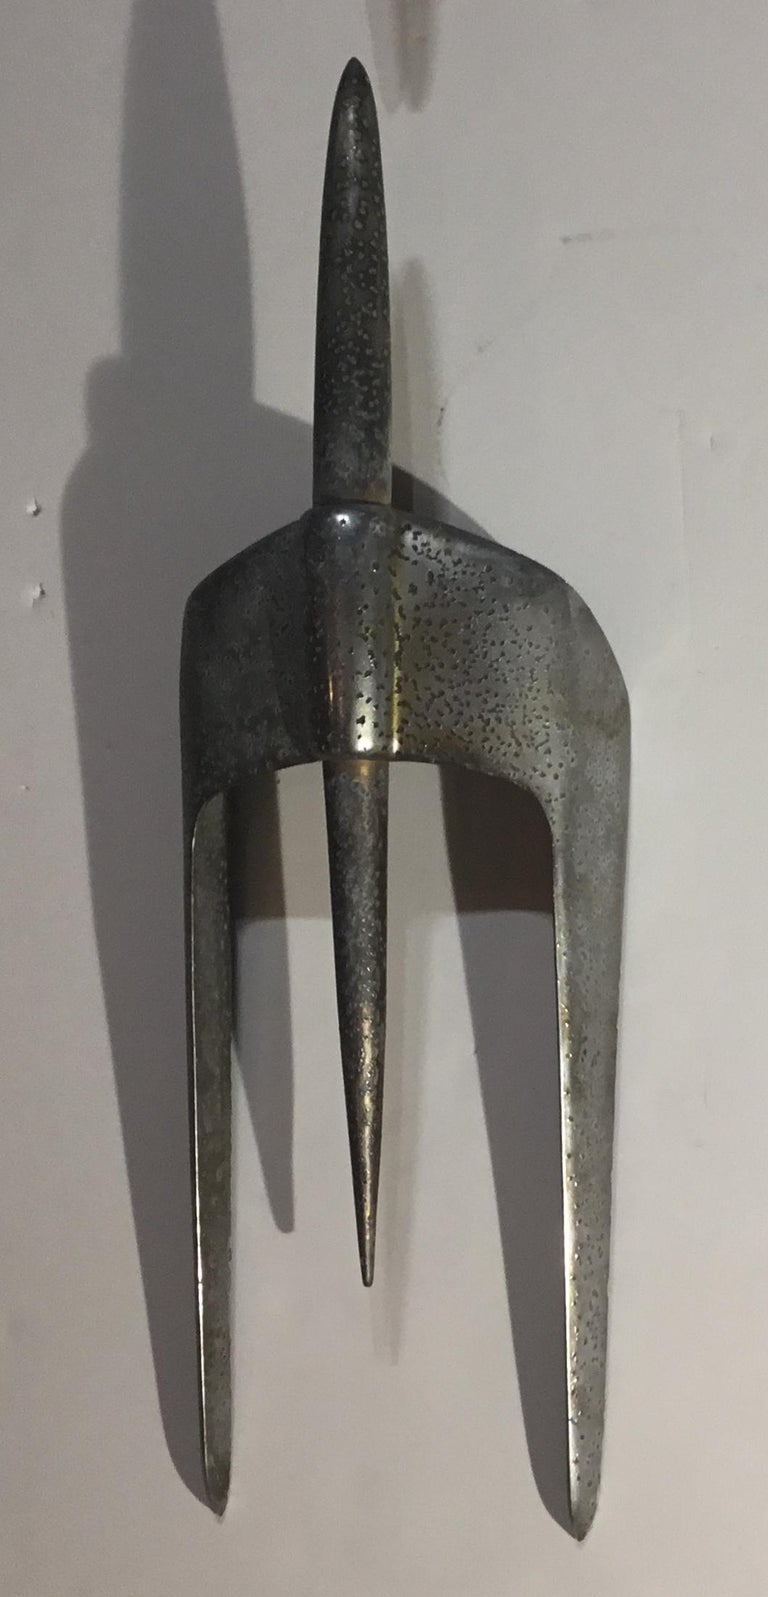 Four Vintage Airplane Wing Hood Car Ornaments Wall Hanging In Good Condition For Sale In Delray Beach, FL